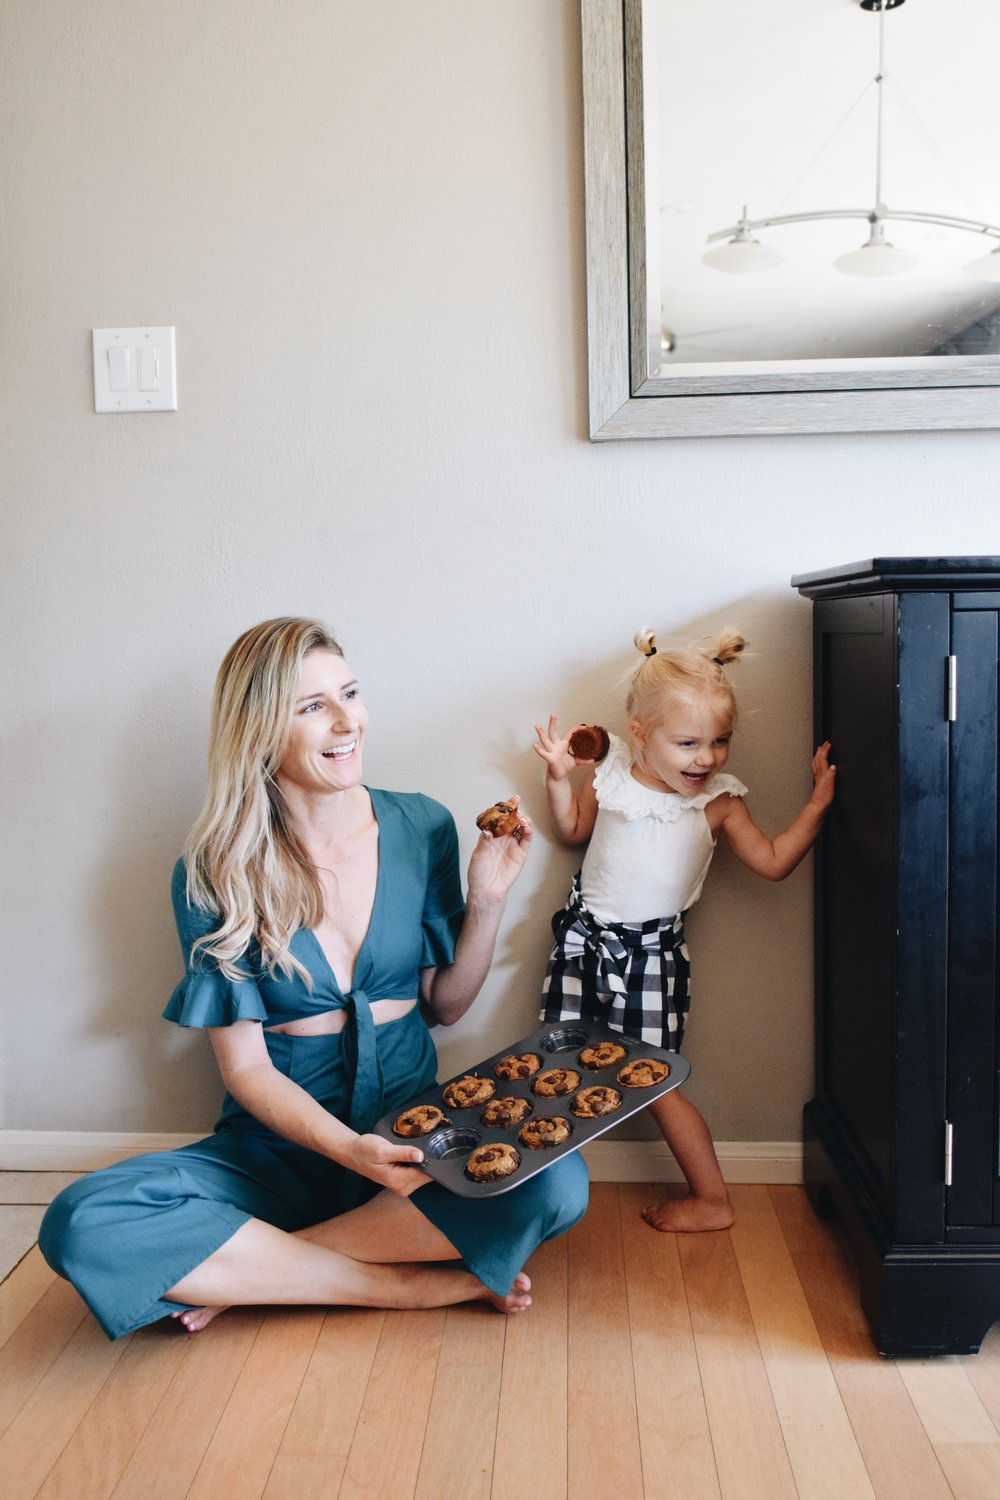 6 Reasons You Should Bake With Your Kids - The Overwhelmed Mommy Blogger